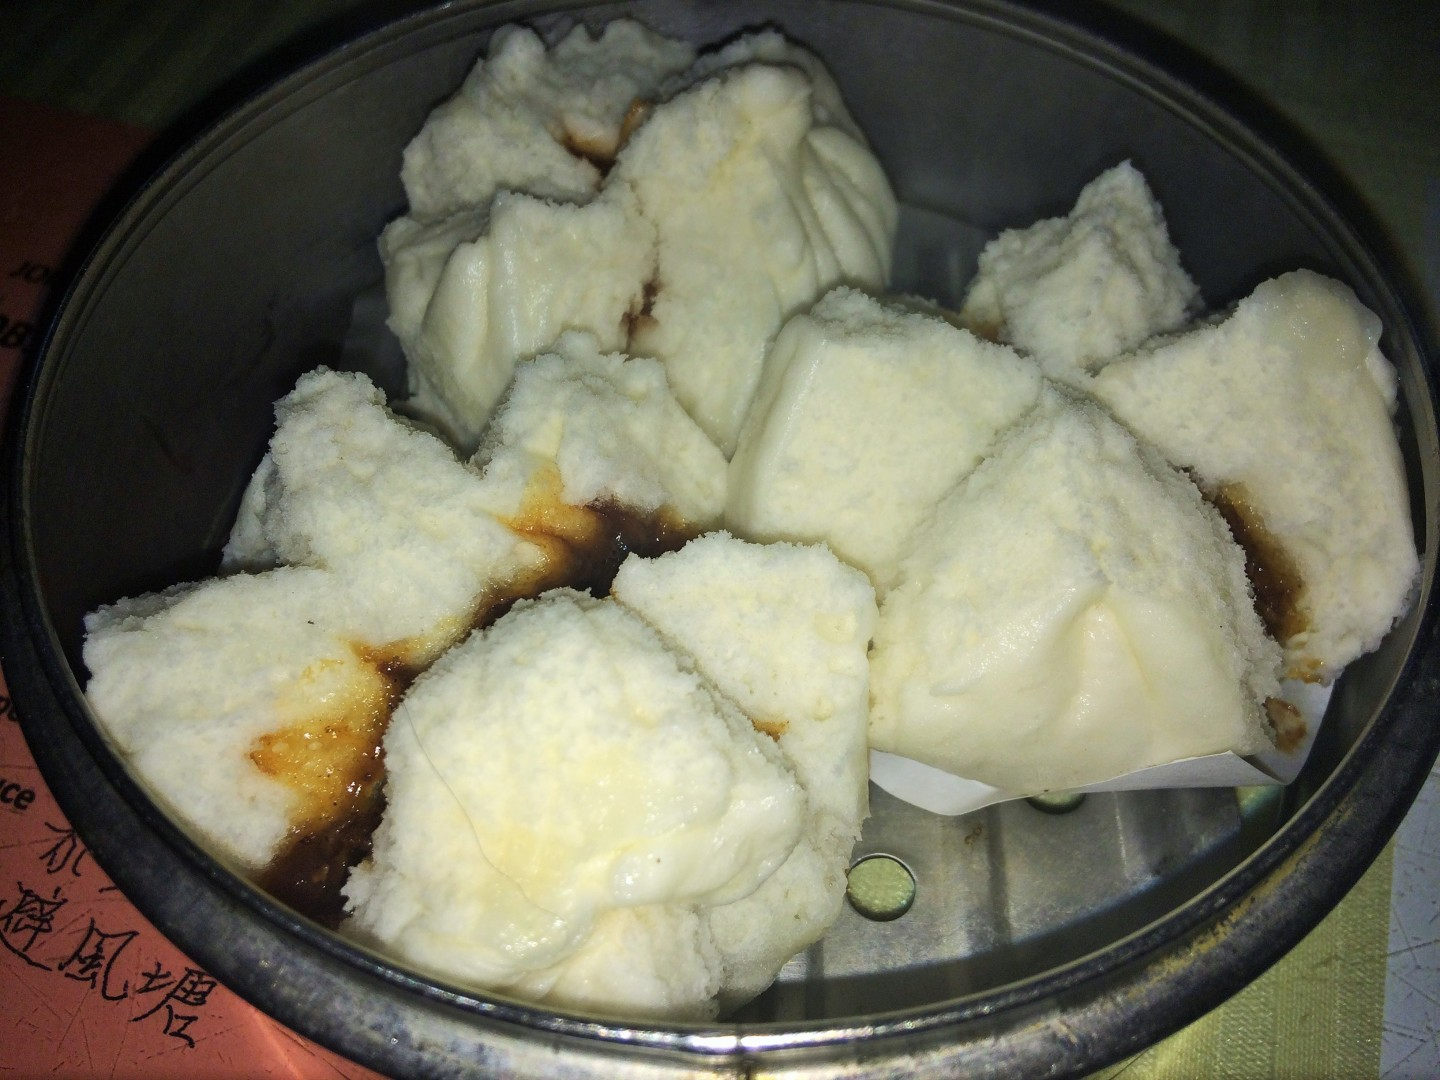 Steamed barbecue roast pork buns